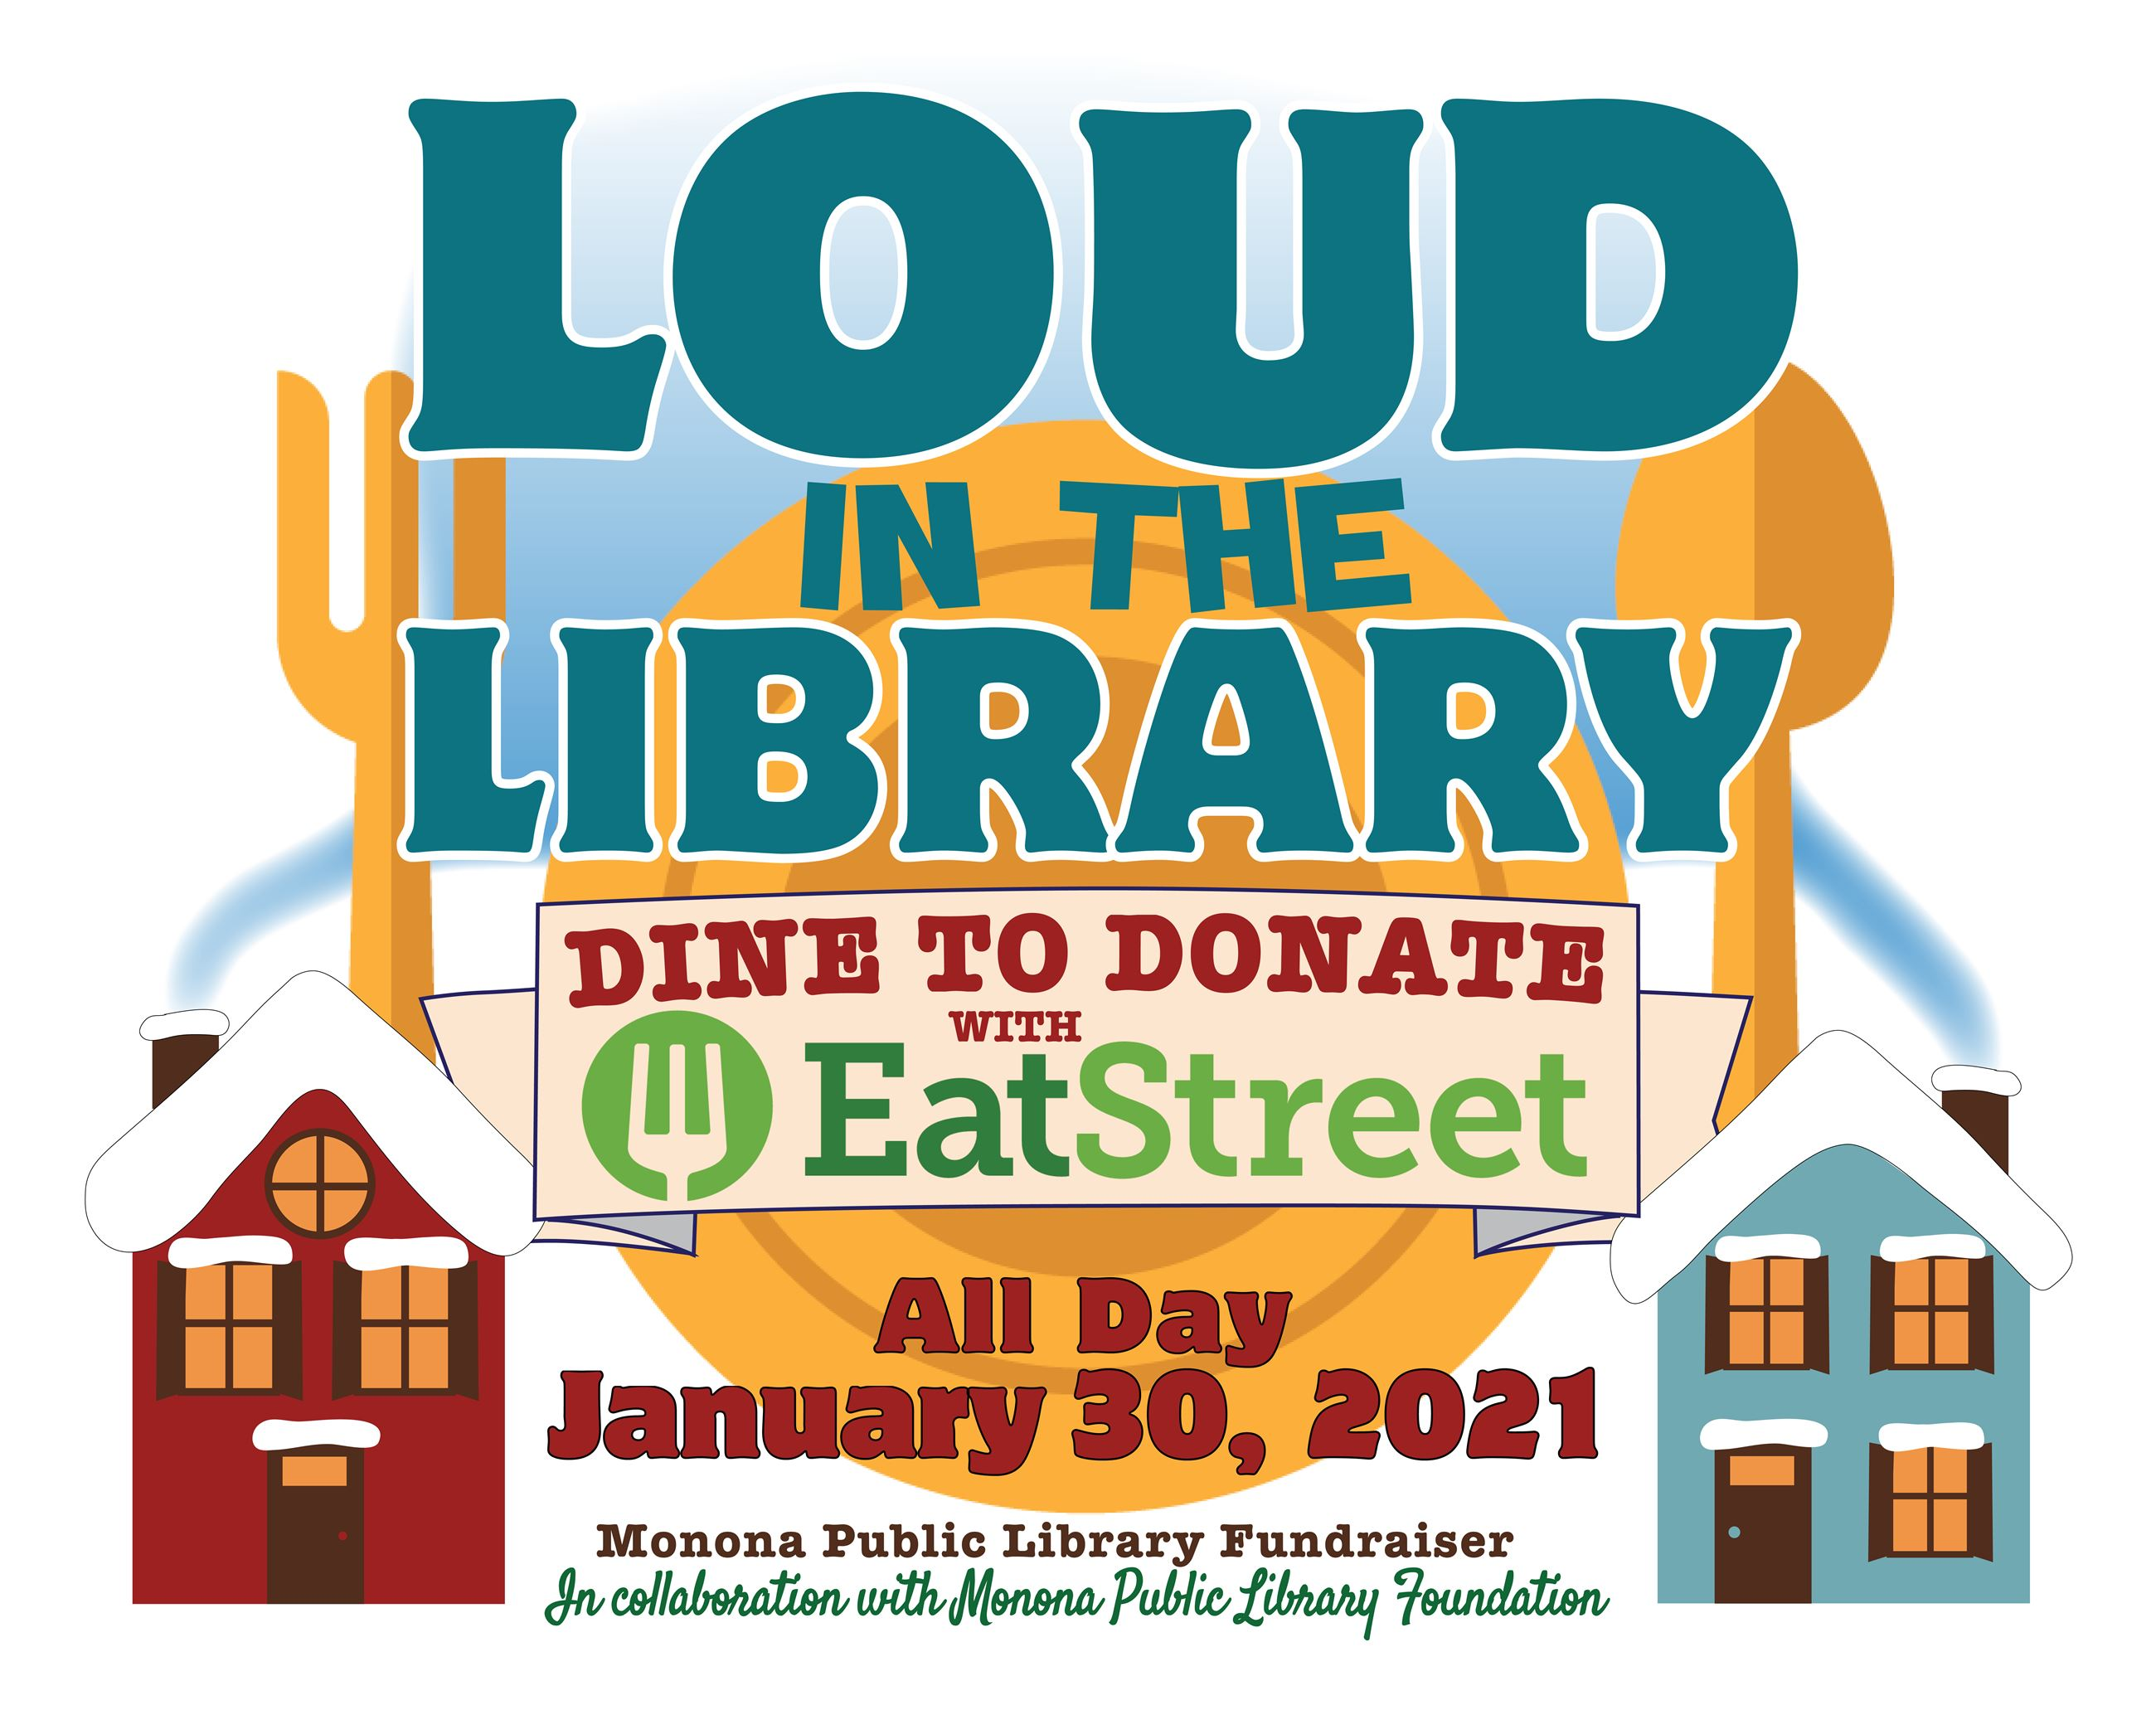 Loud in the Library 2021_Dine to Donate